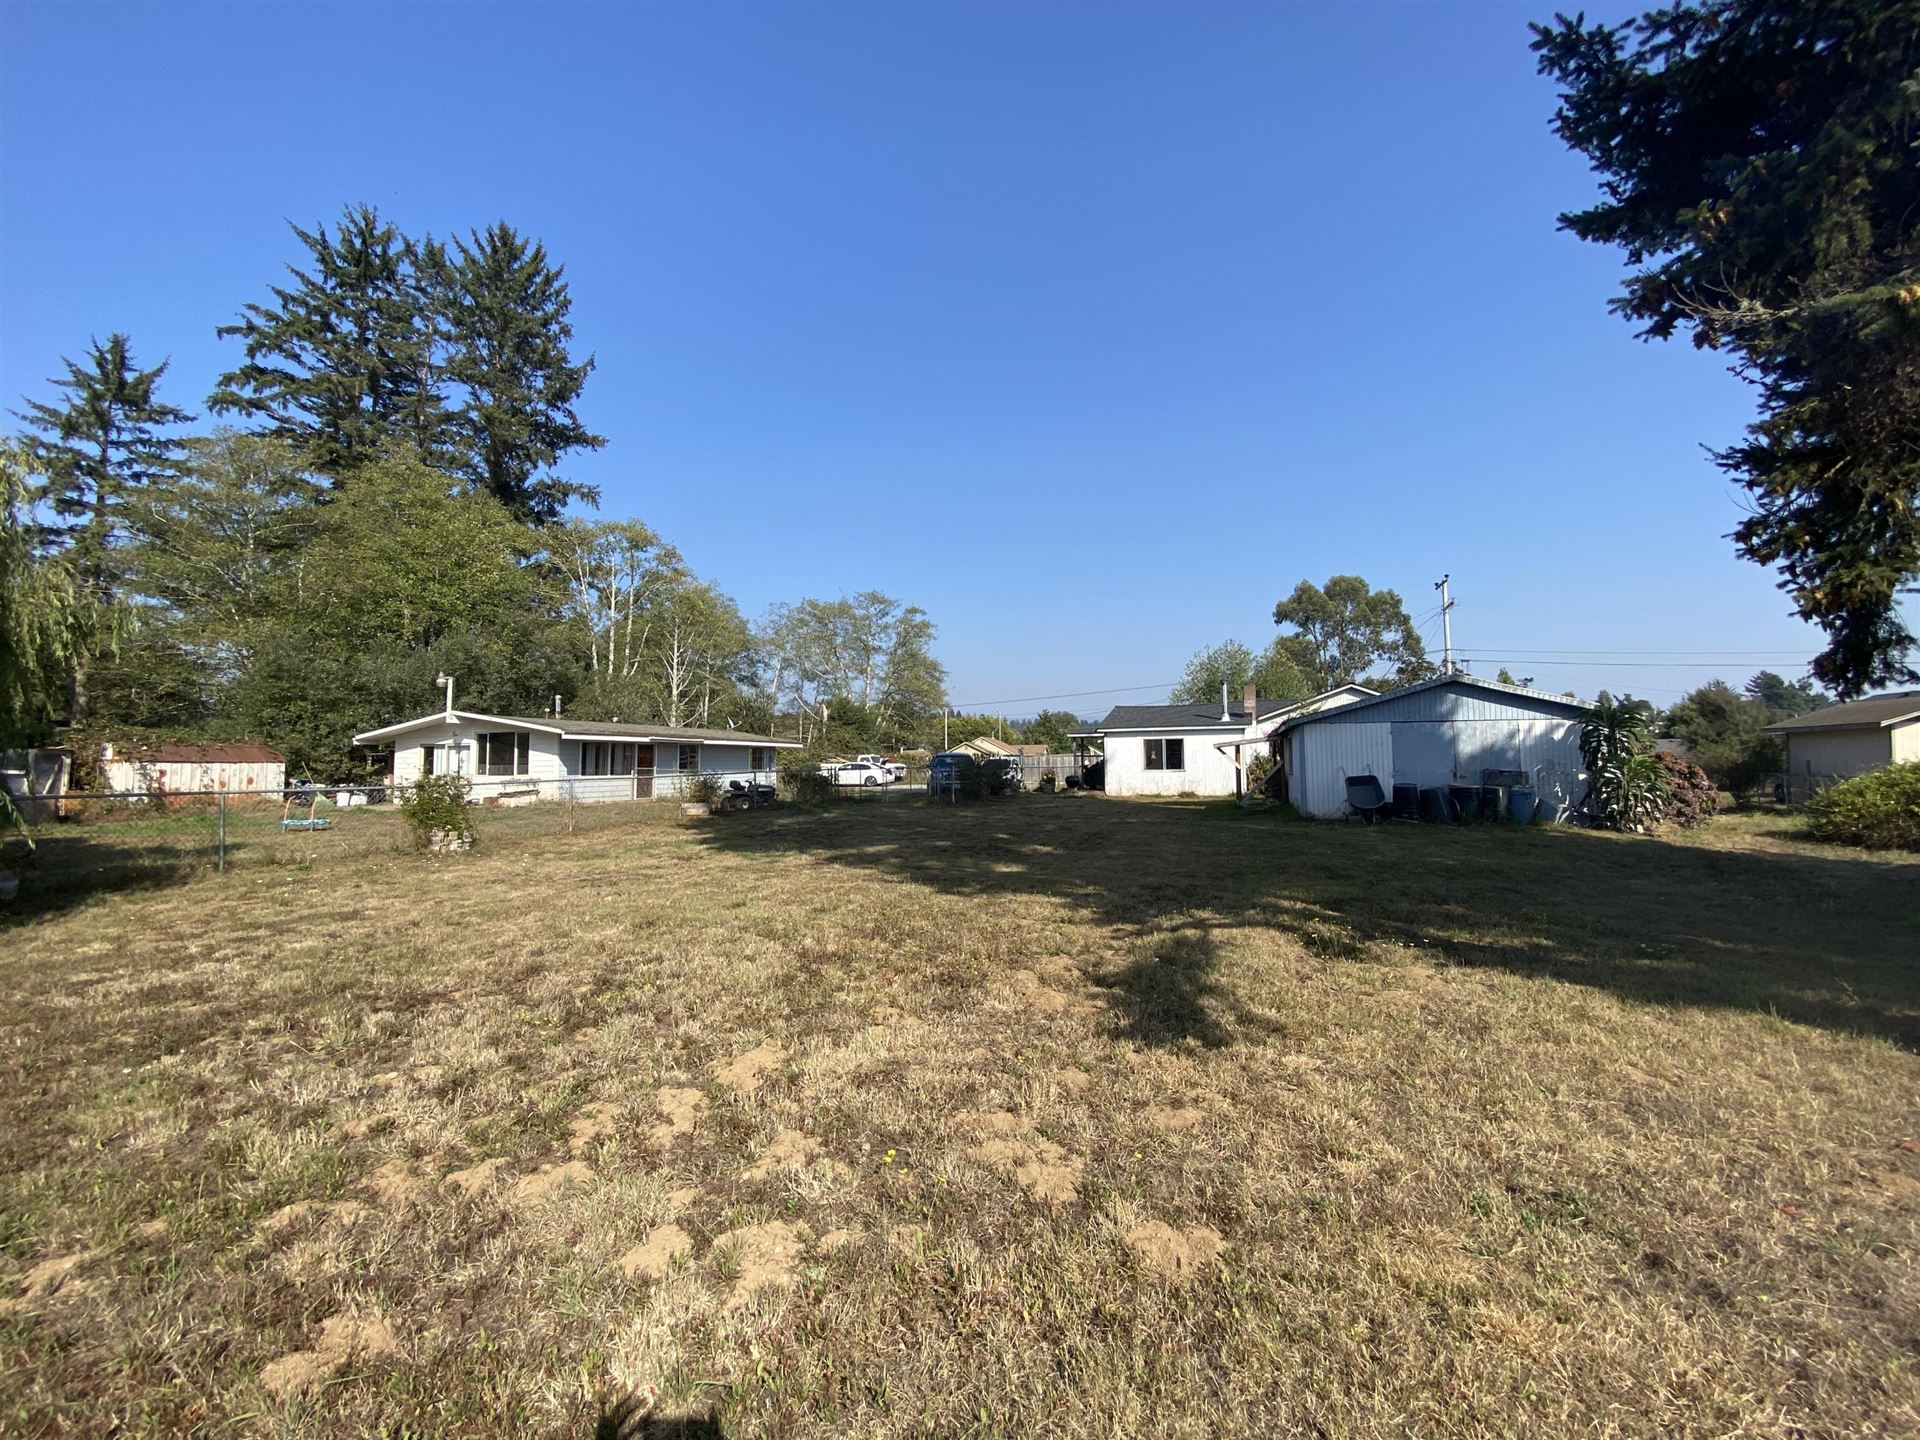 1688 Childrens Avenue, McKinleyville, CA 95519 - MLS#: 257652